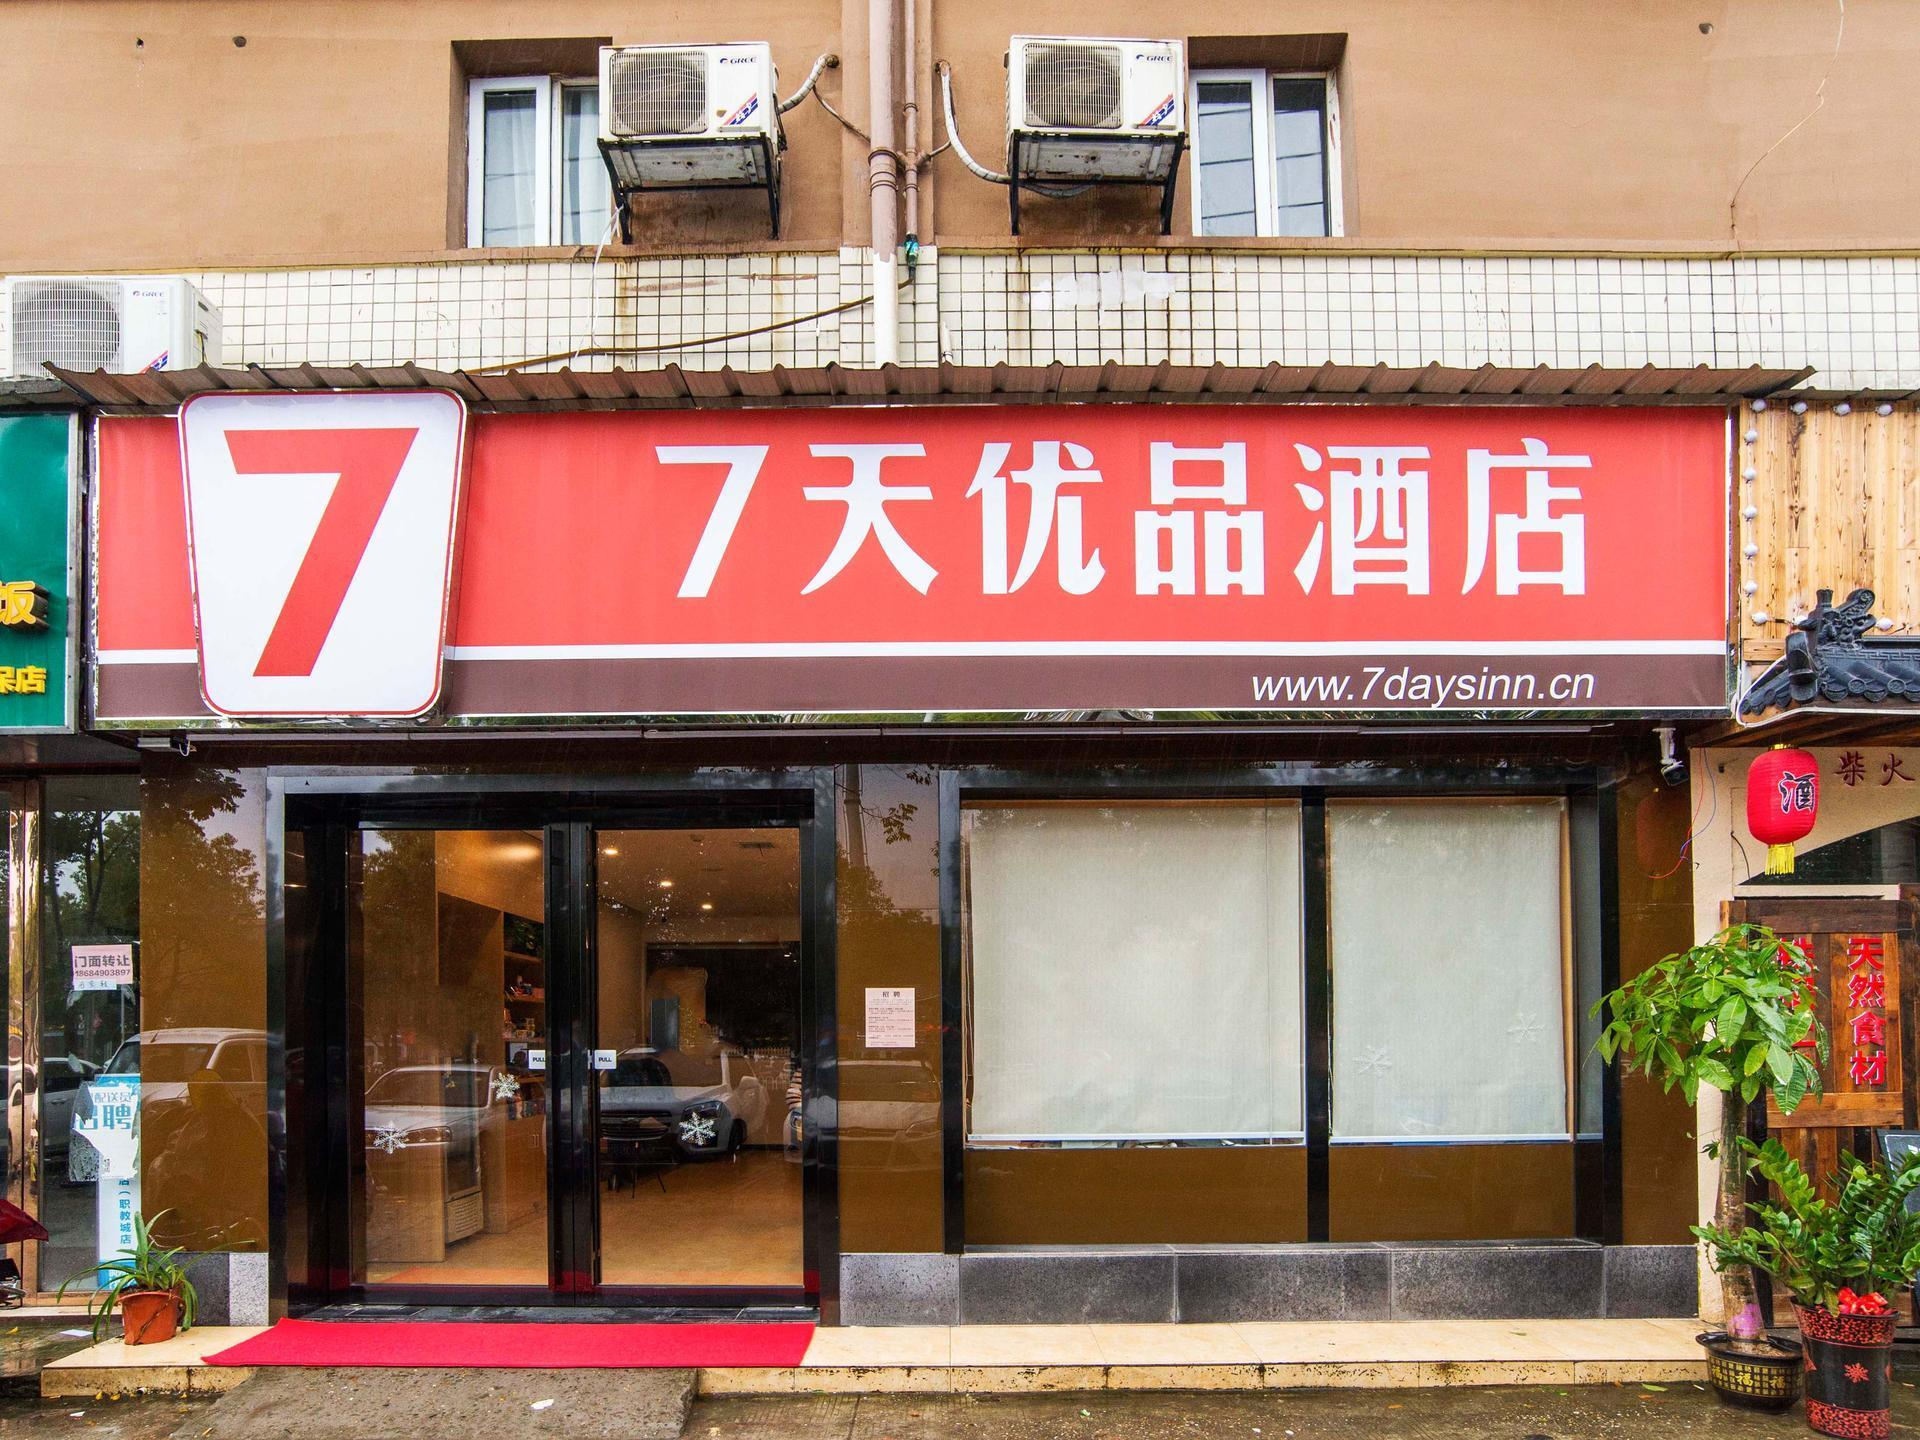 7 Days Inn�Changsha Environmental Science And Technology Park Zhijiaocheng